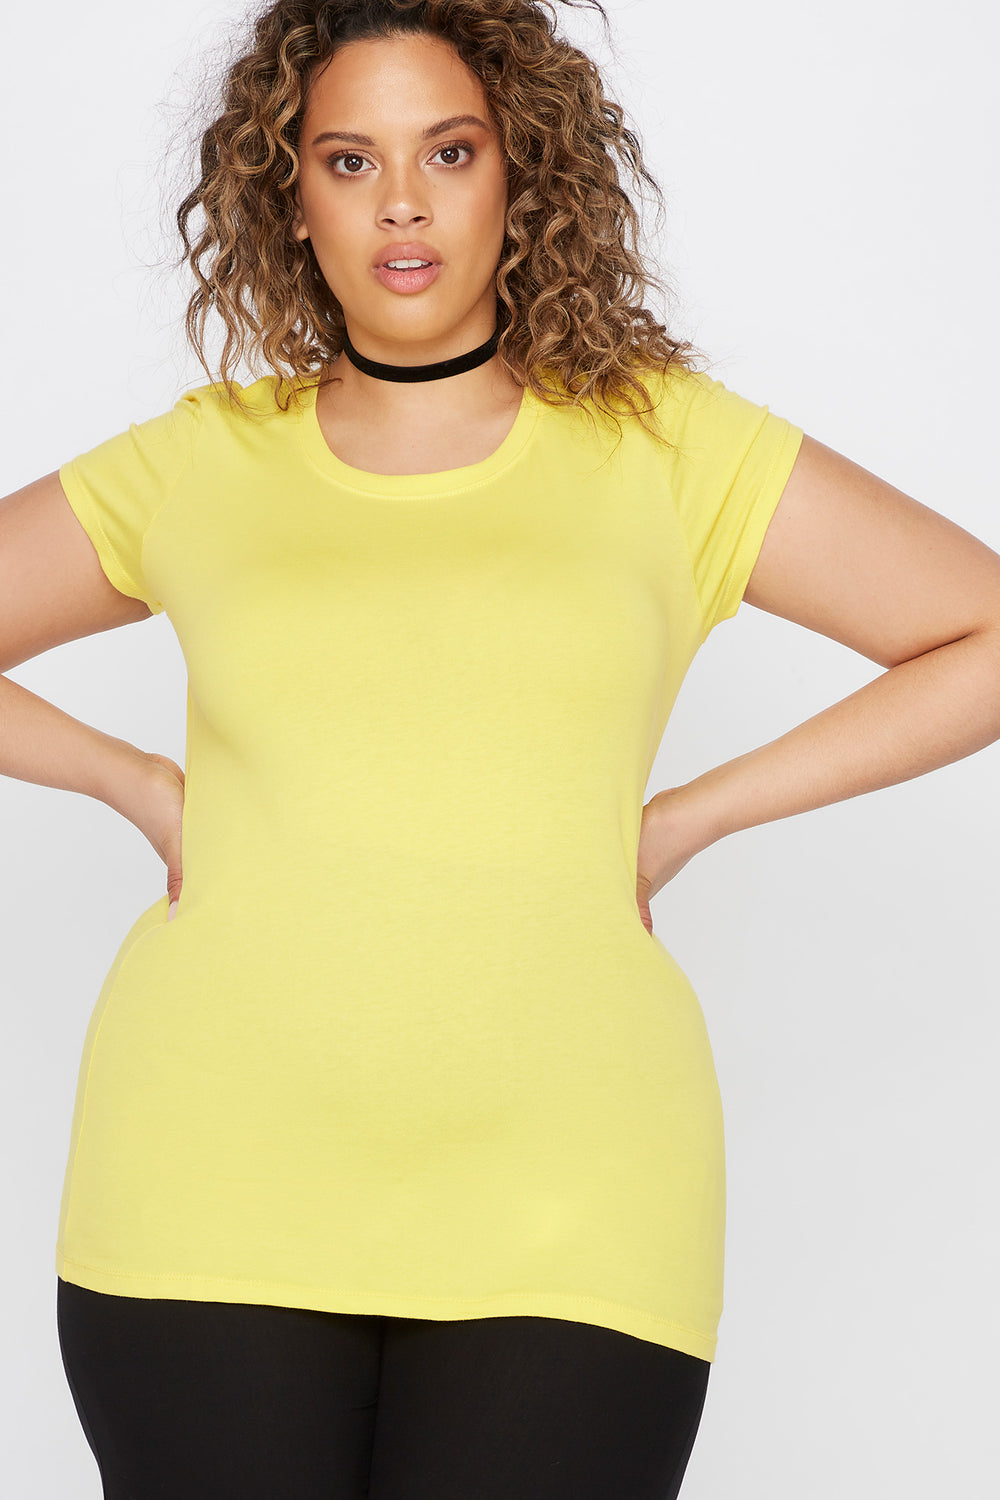 Plus Size Basic Crew Neck T-Shirt Yellow